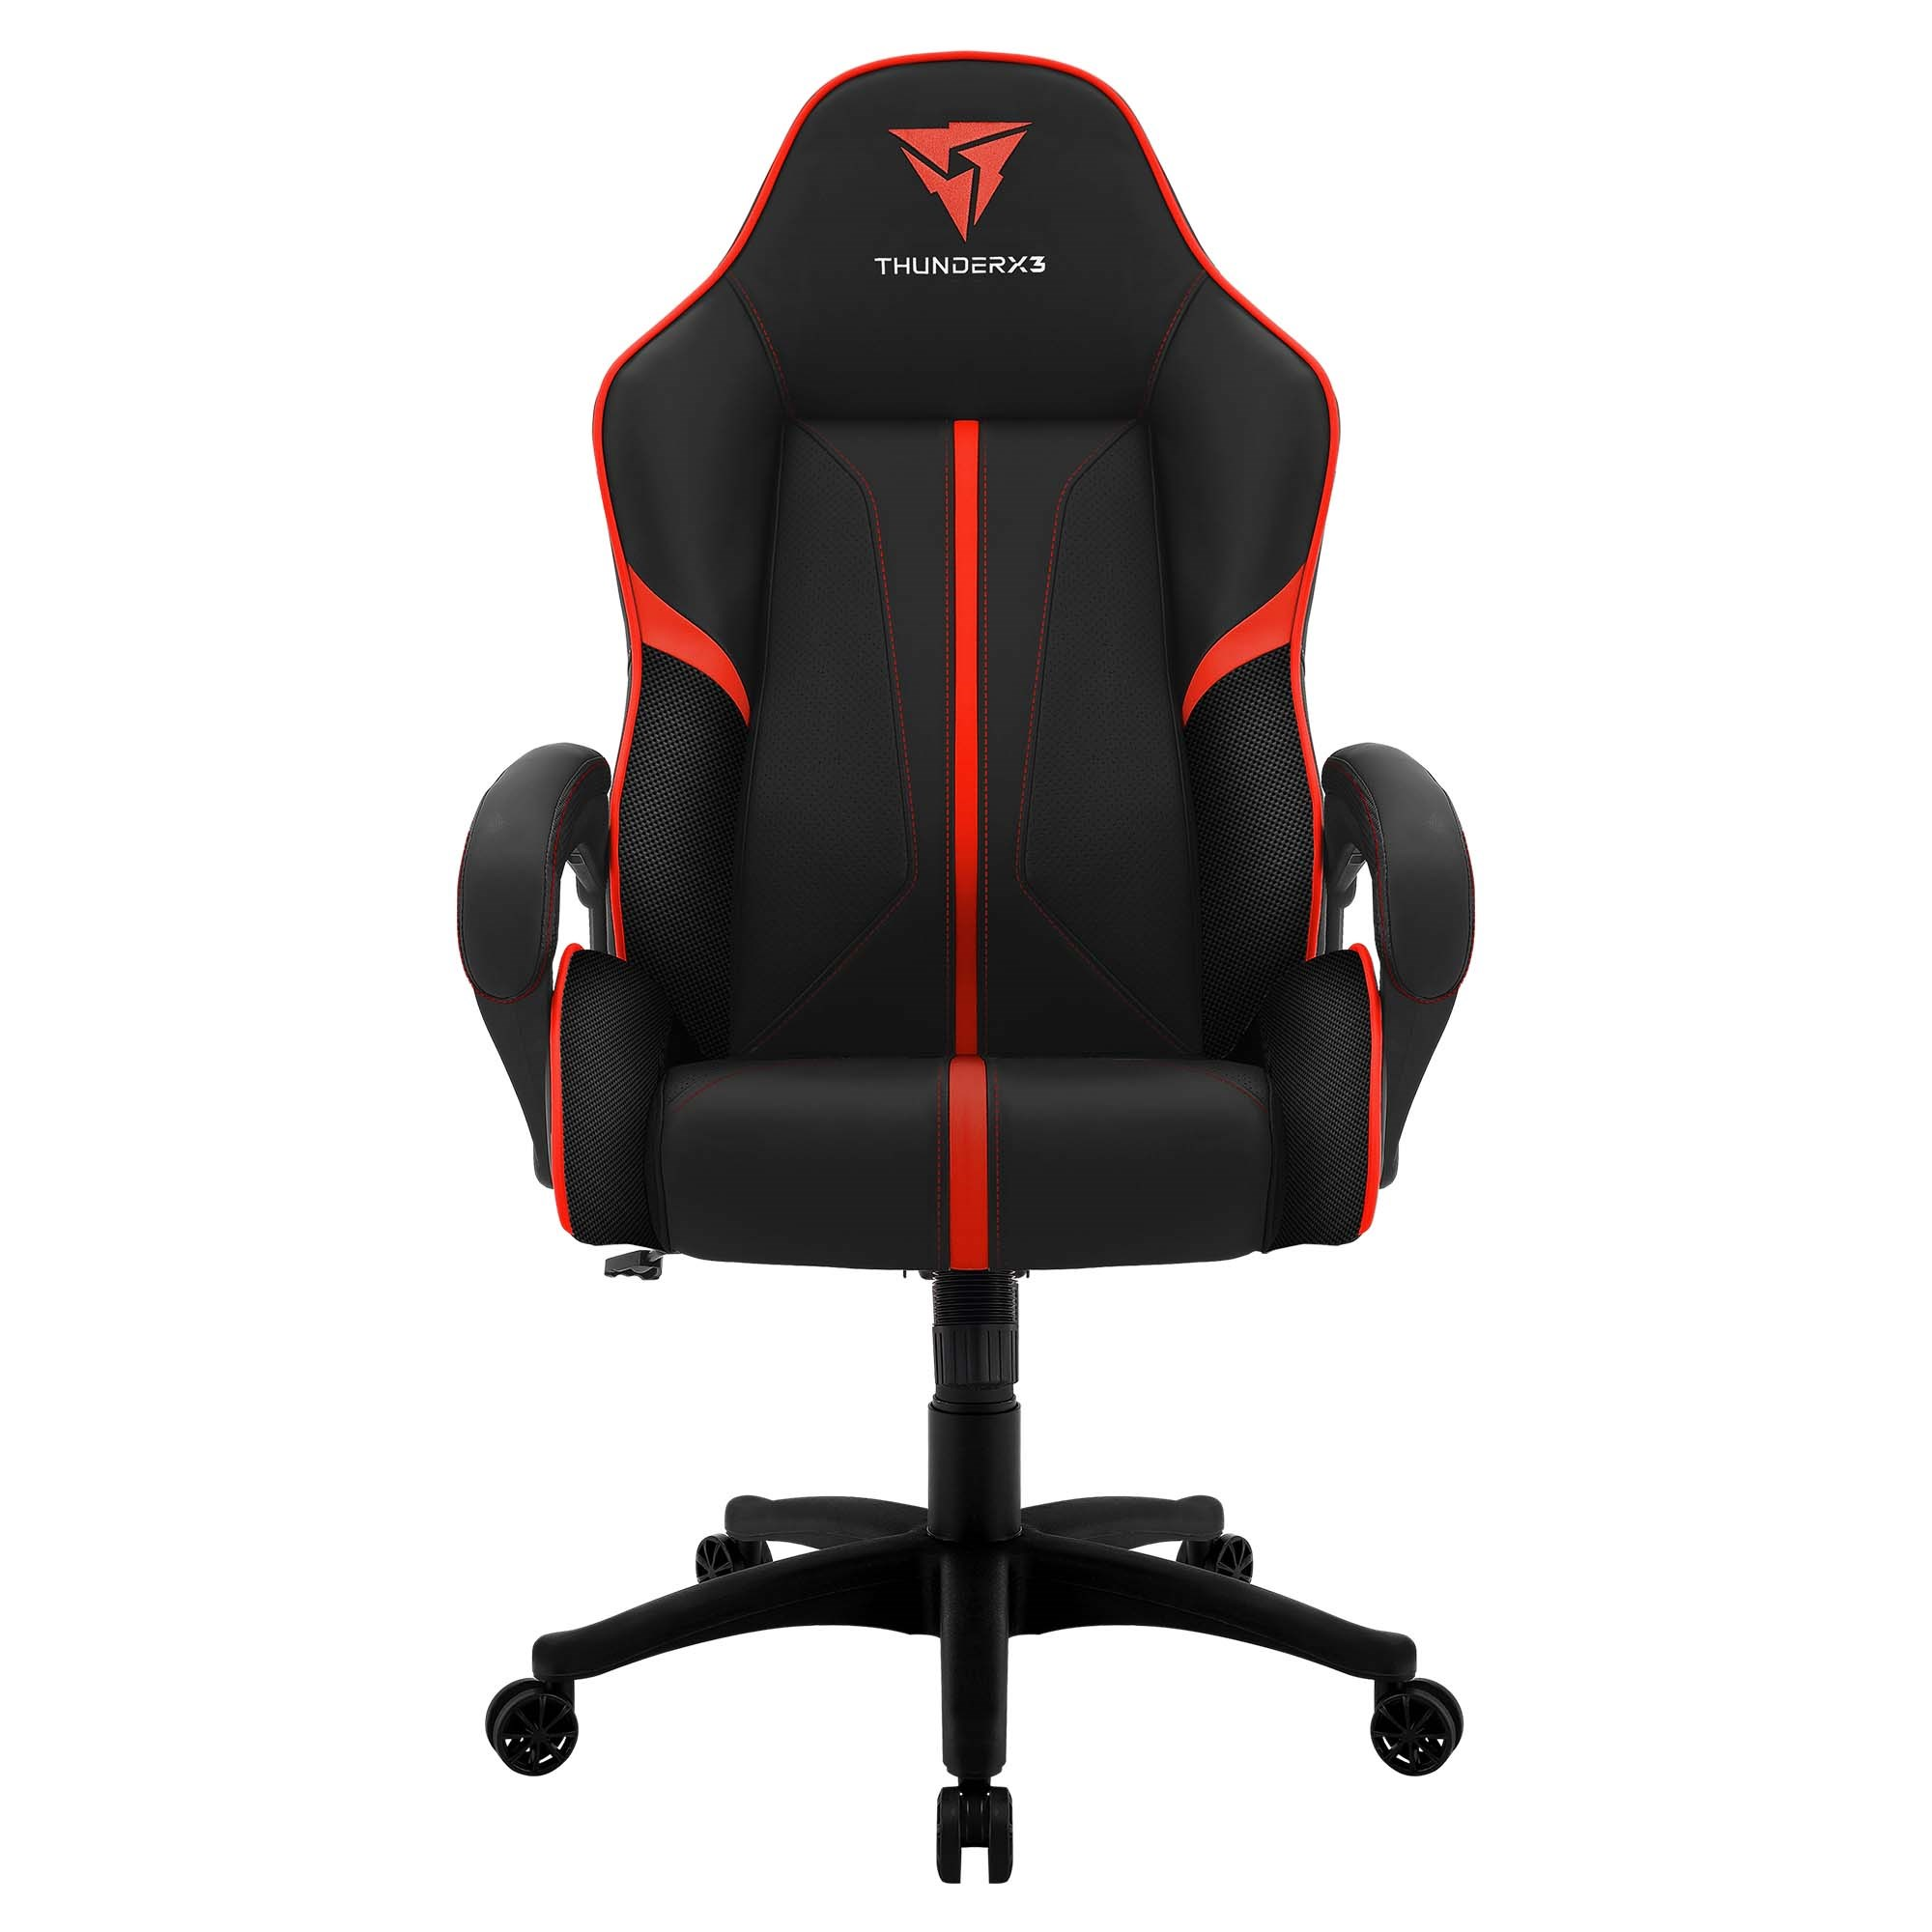 ThunderX3 BC1, Chair Gaming Ergonomic, Synthetic Leather, Technology AIR, Adjustable Height, Red